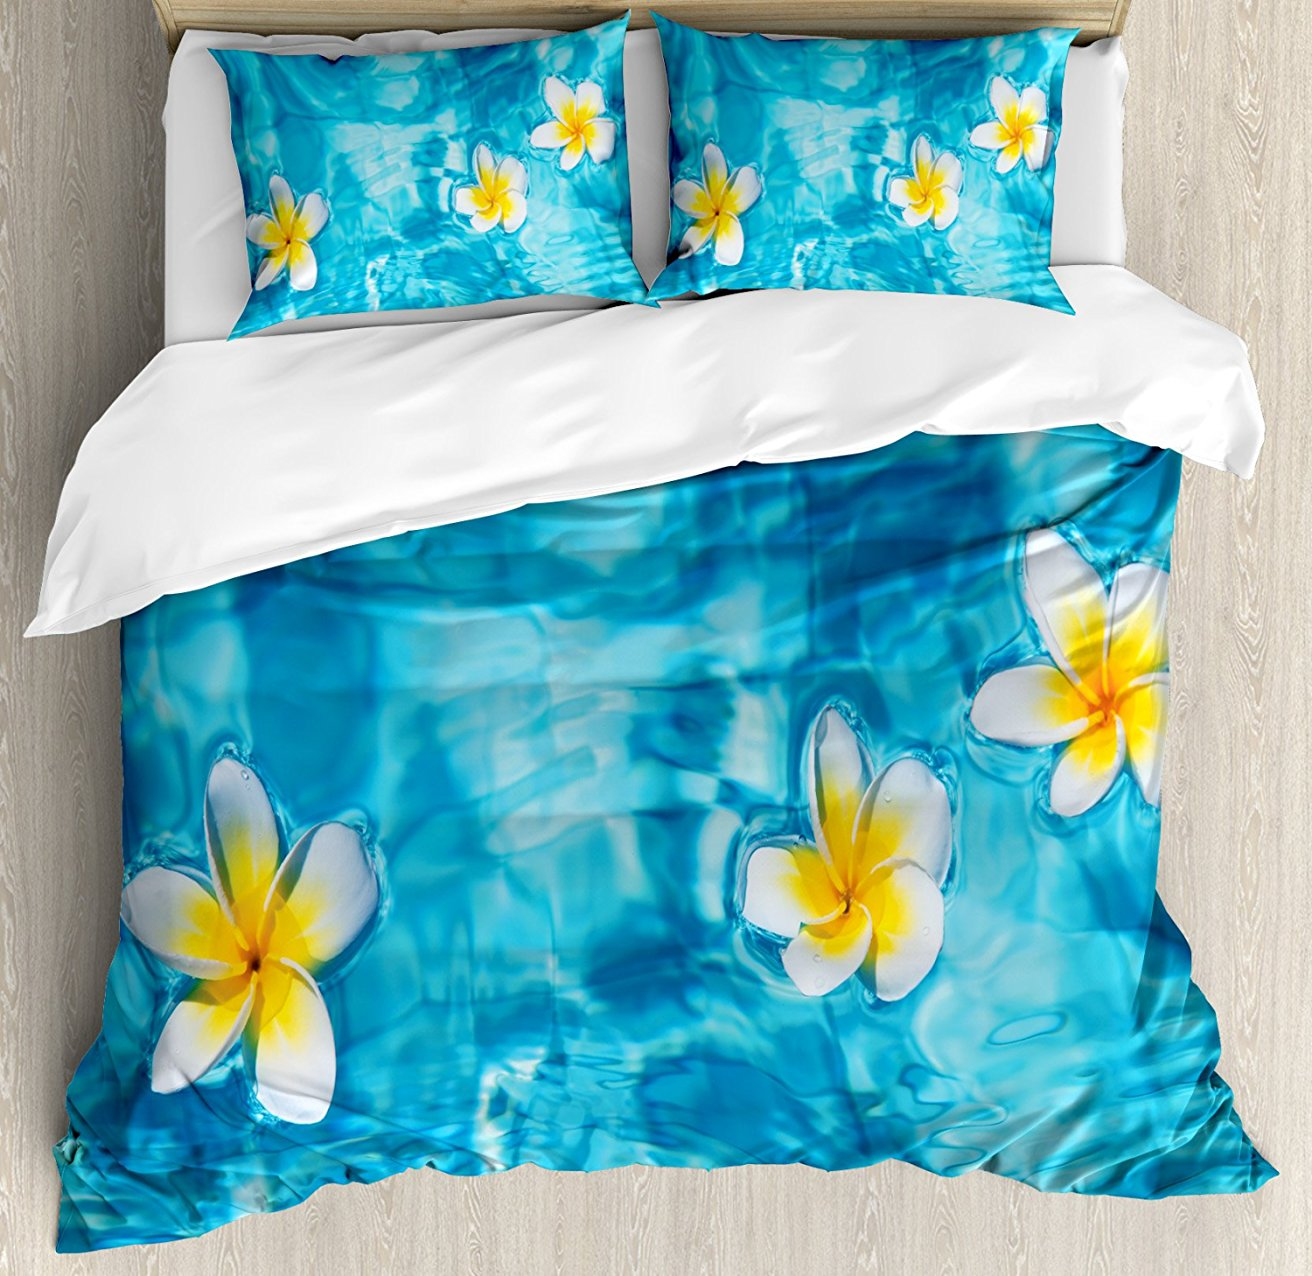 Home & Garden Bedding Sets Tropical Duvet Cover Set Modern Illustration Of A Tropical Beach With Palm Trees And Hammock Hawaiian Relax 4 Piece Bedding Set